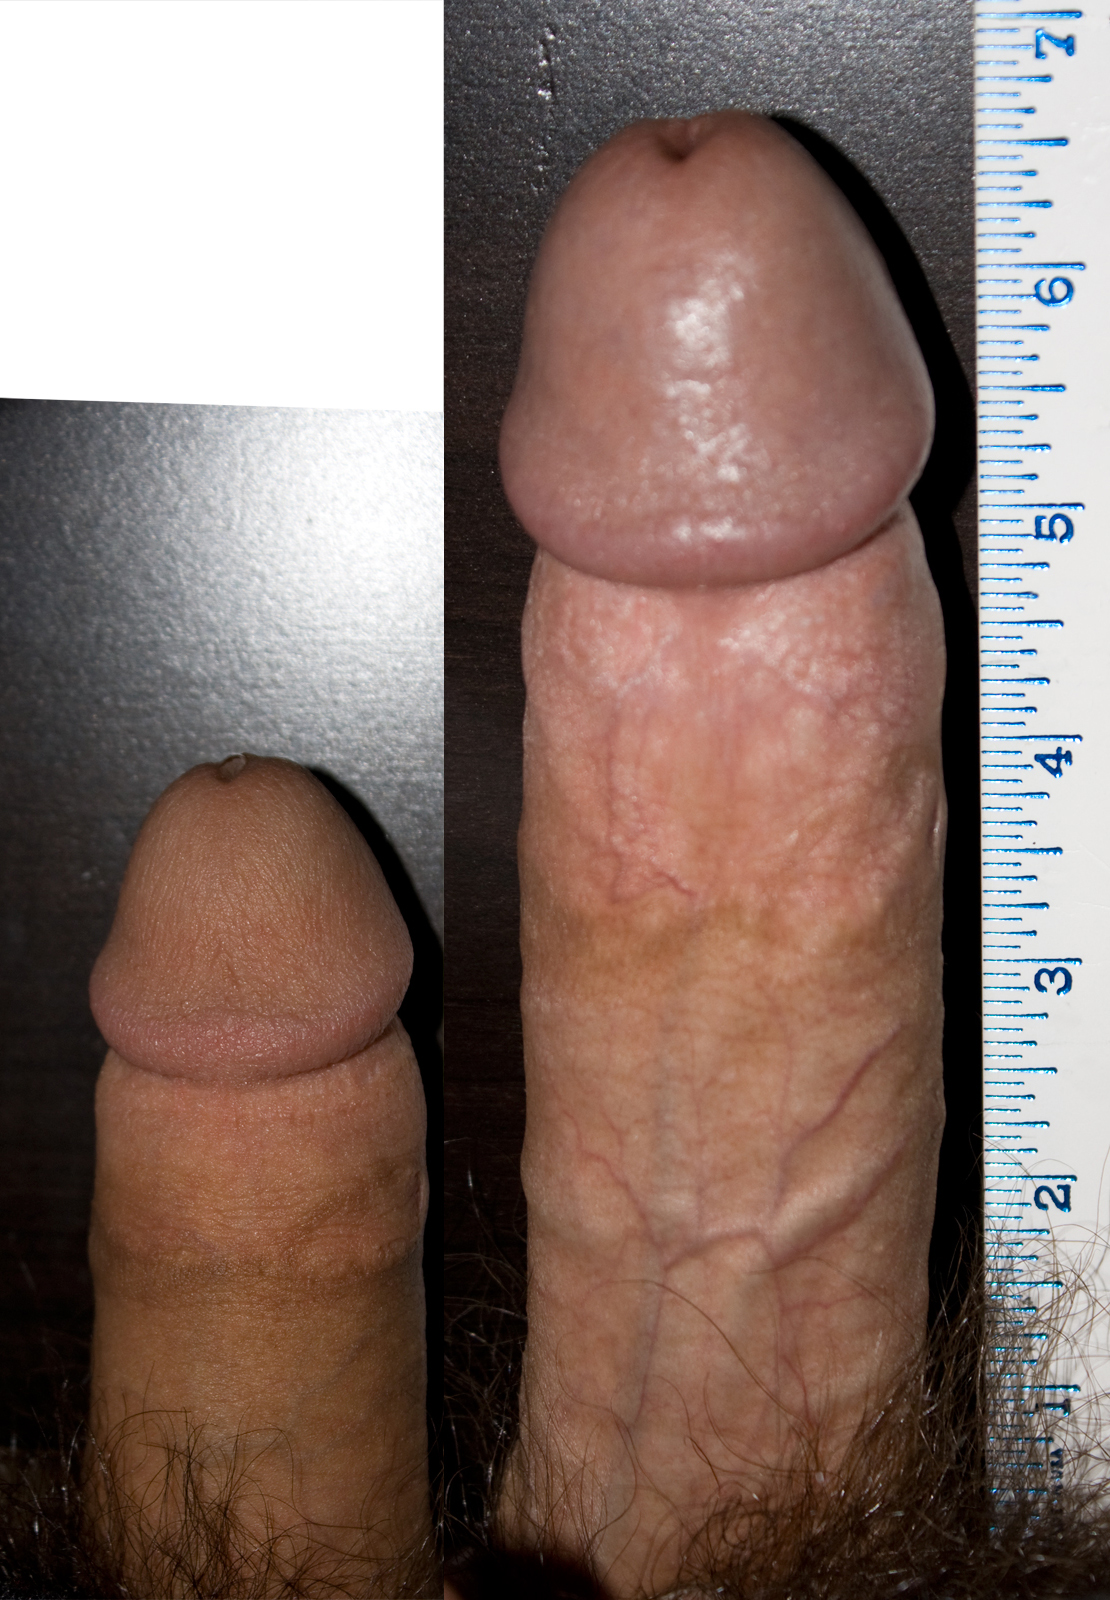 Flaccid penis measurements